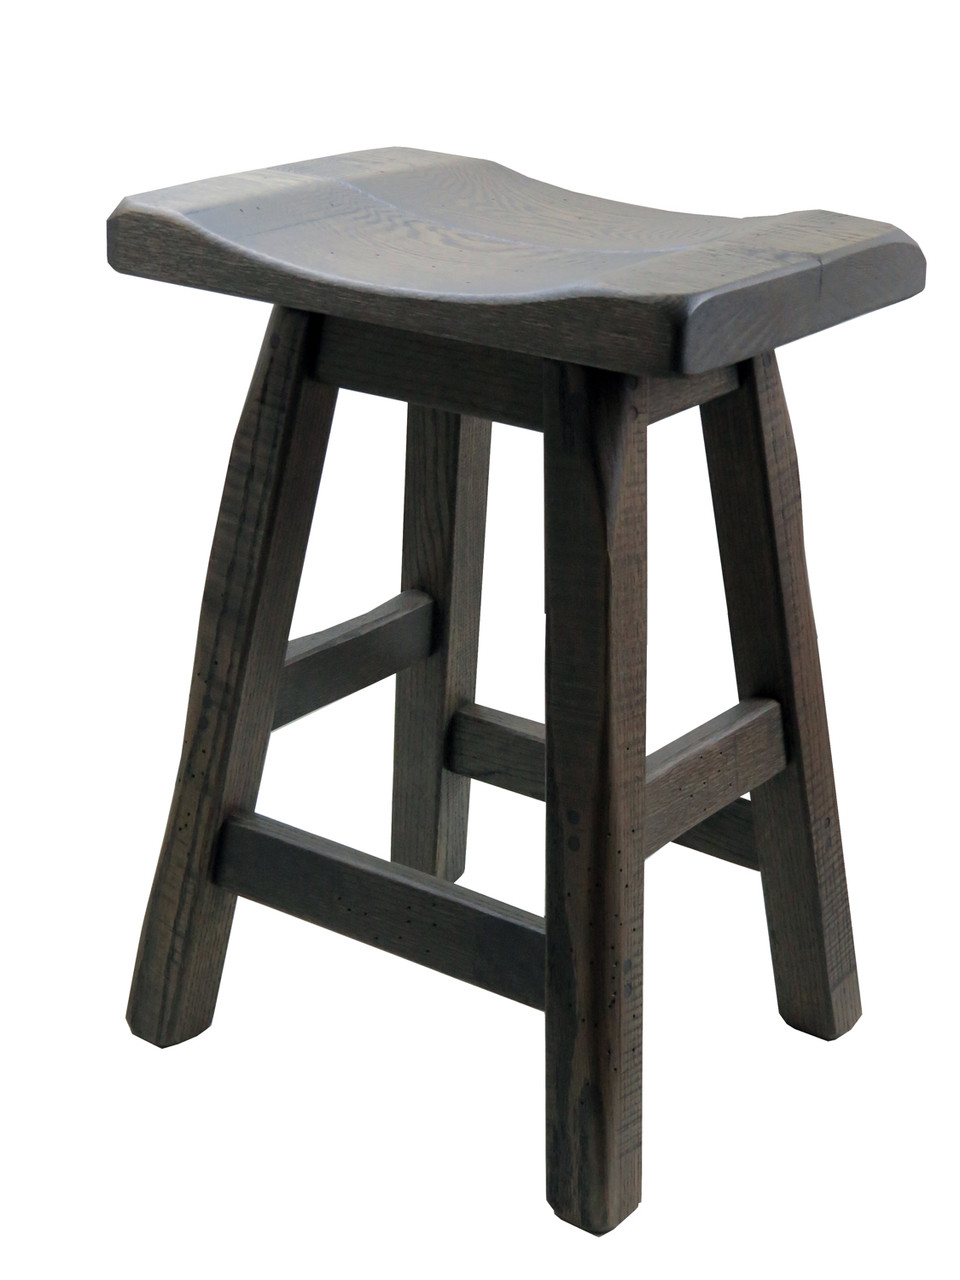 Prime Swivel Barnwood Bar Stools 30 Saddle Seat Multiple Colors Available Pdpeps Interior Chair Design Pdpepsorg